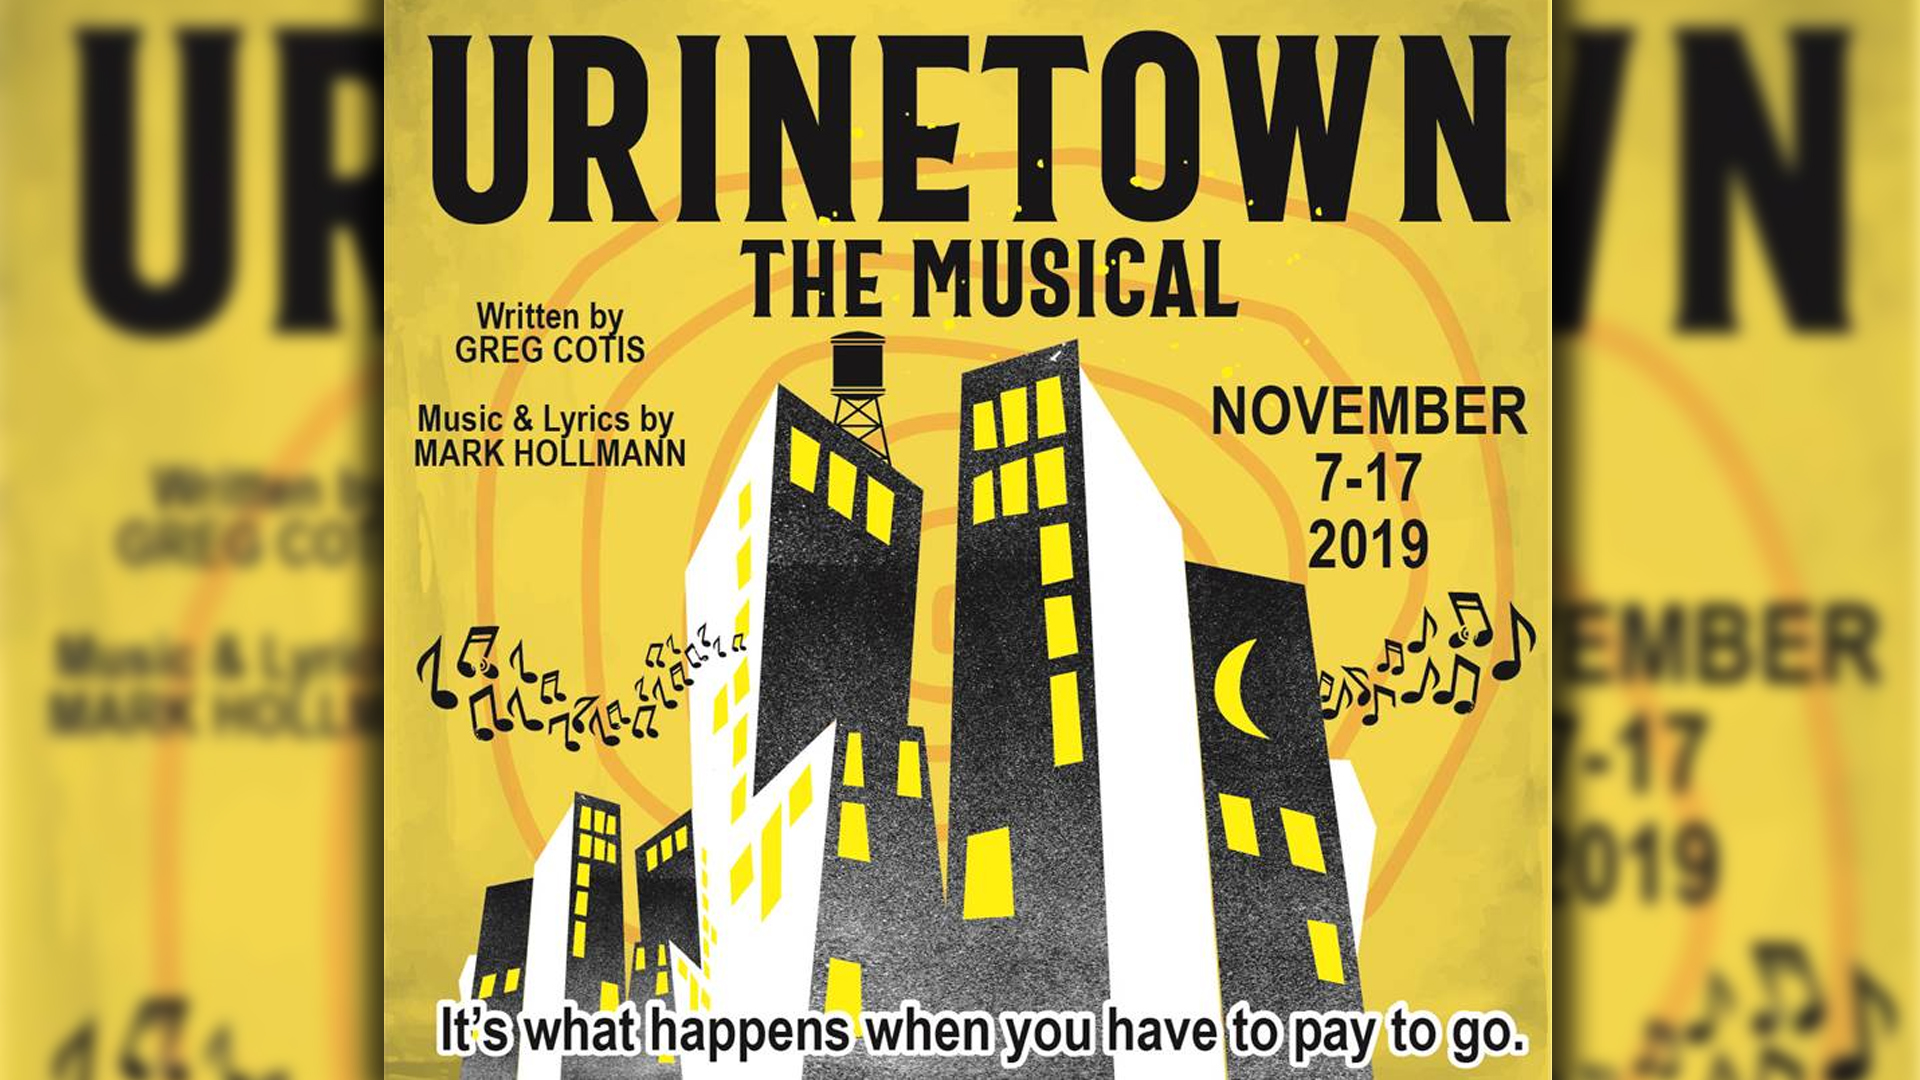 Urinetown - November Events You Need To Experience